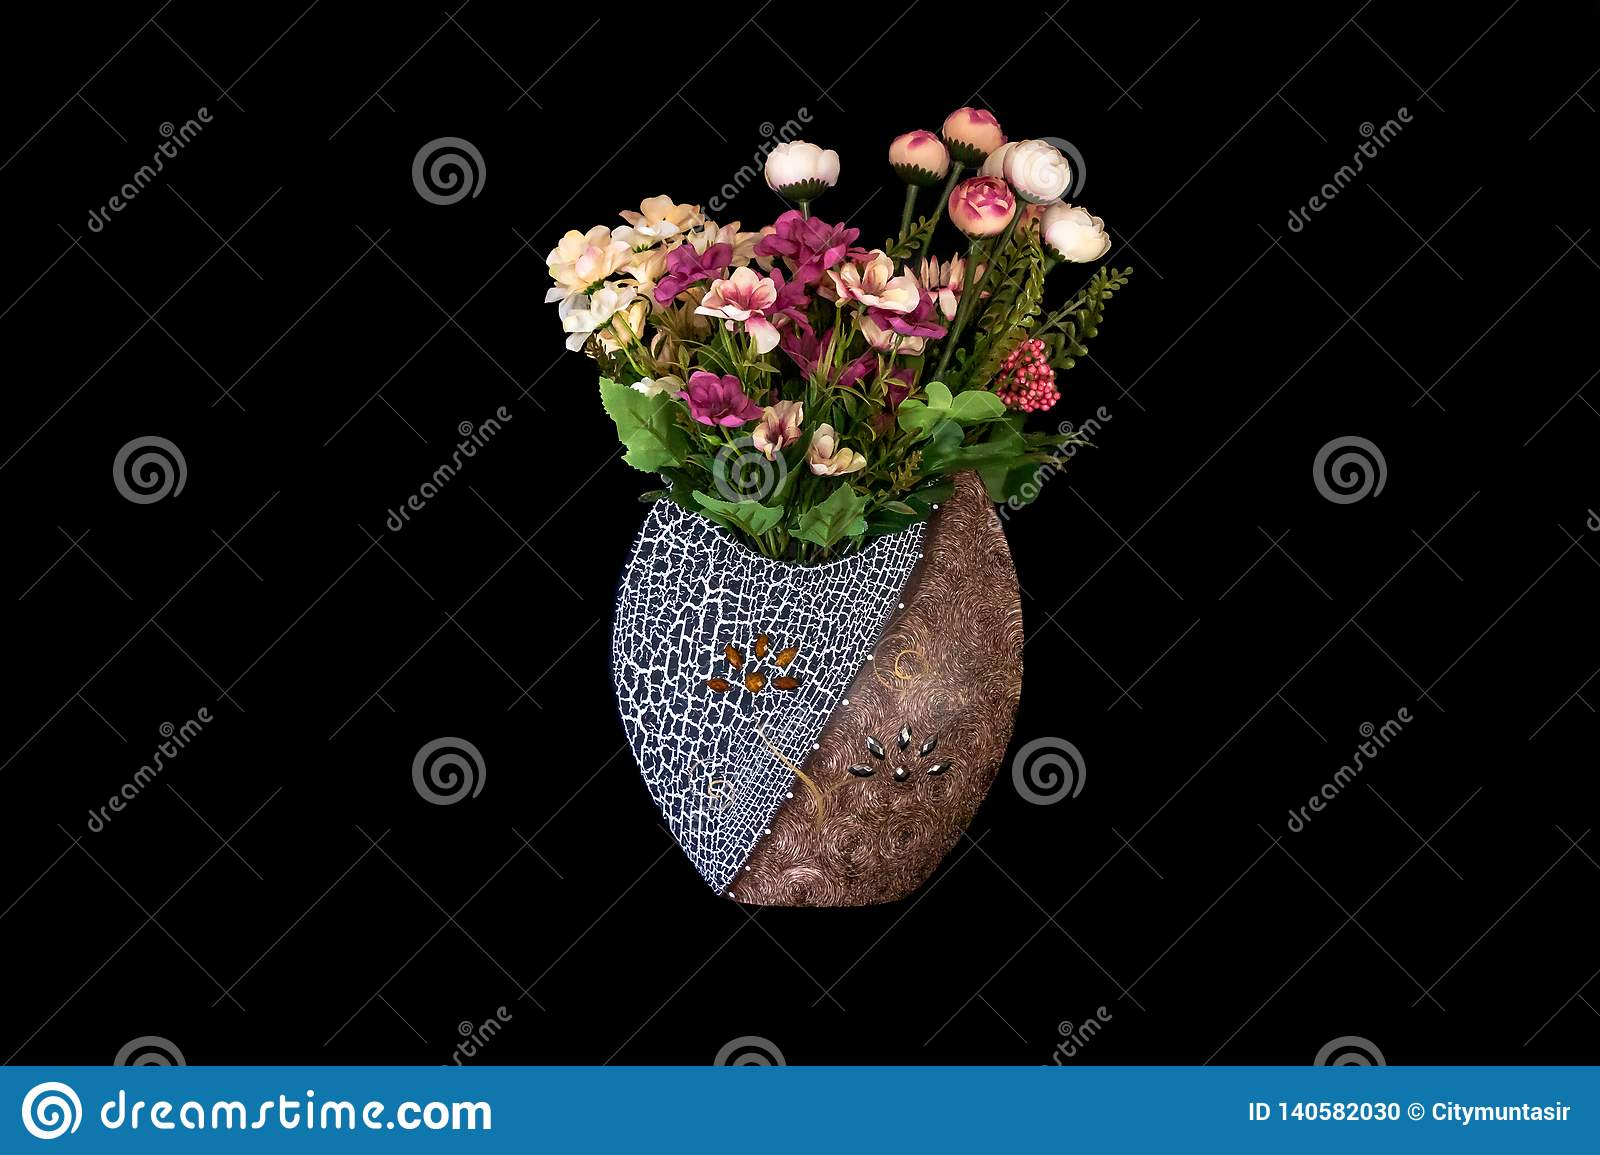 Beautiful Vase with yellow, red, pink, purple plastic flowers and leaves in Solid Black Background